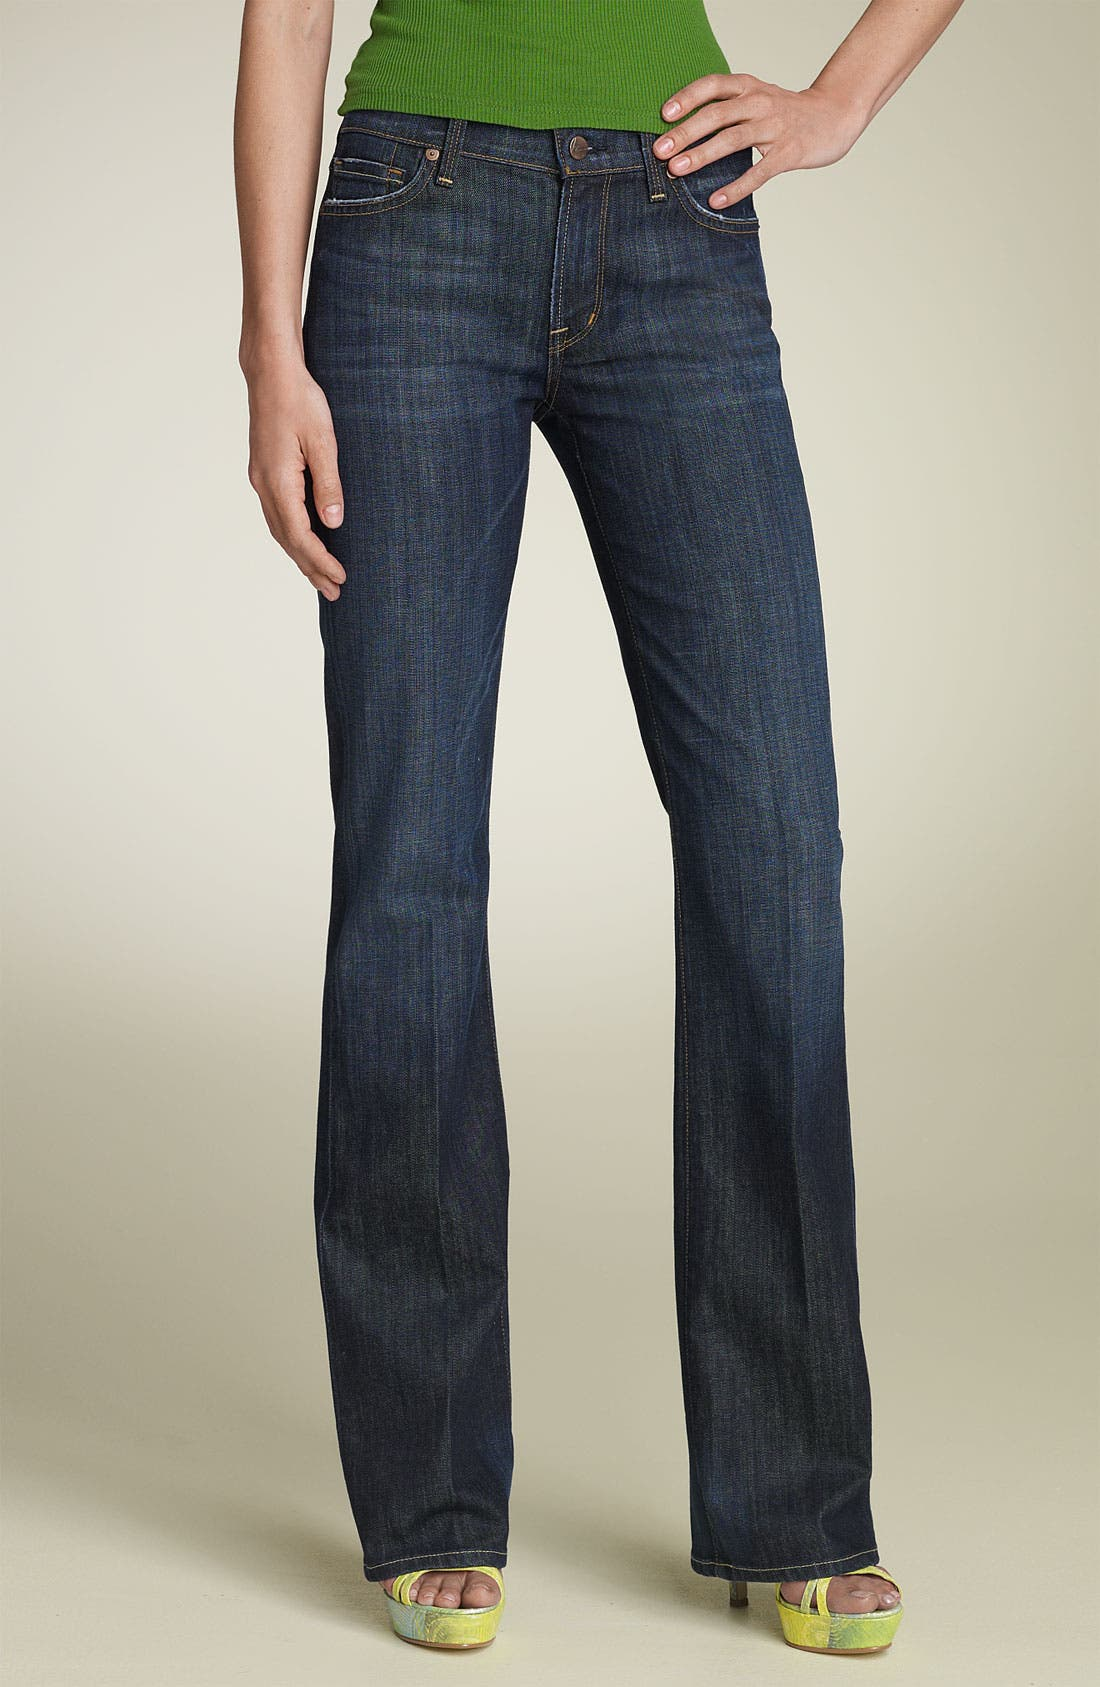 Alternate Image 1 Selected - Citizens of Humanity 'Amber' Mid Rise Bootcut Stretch Jeans (New Pacific)